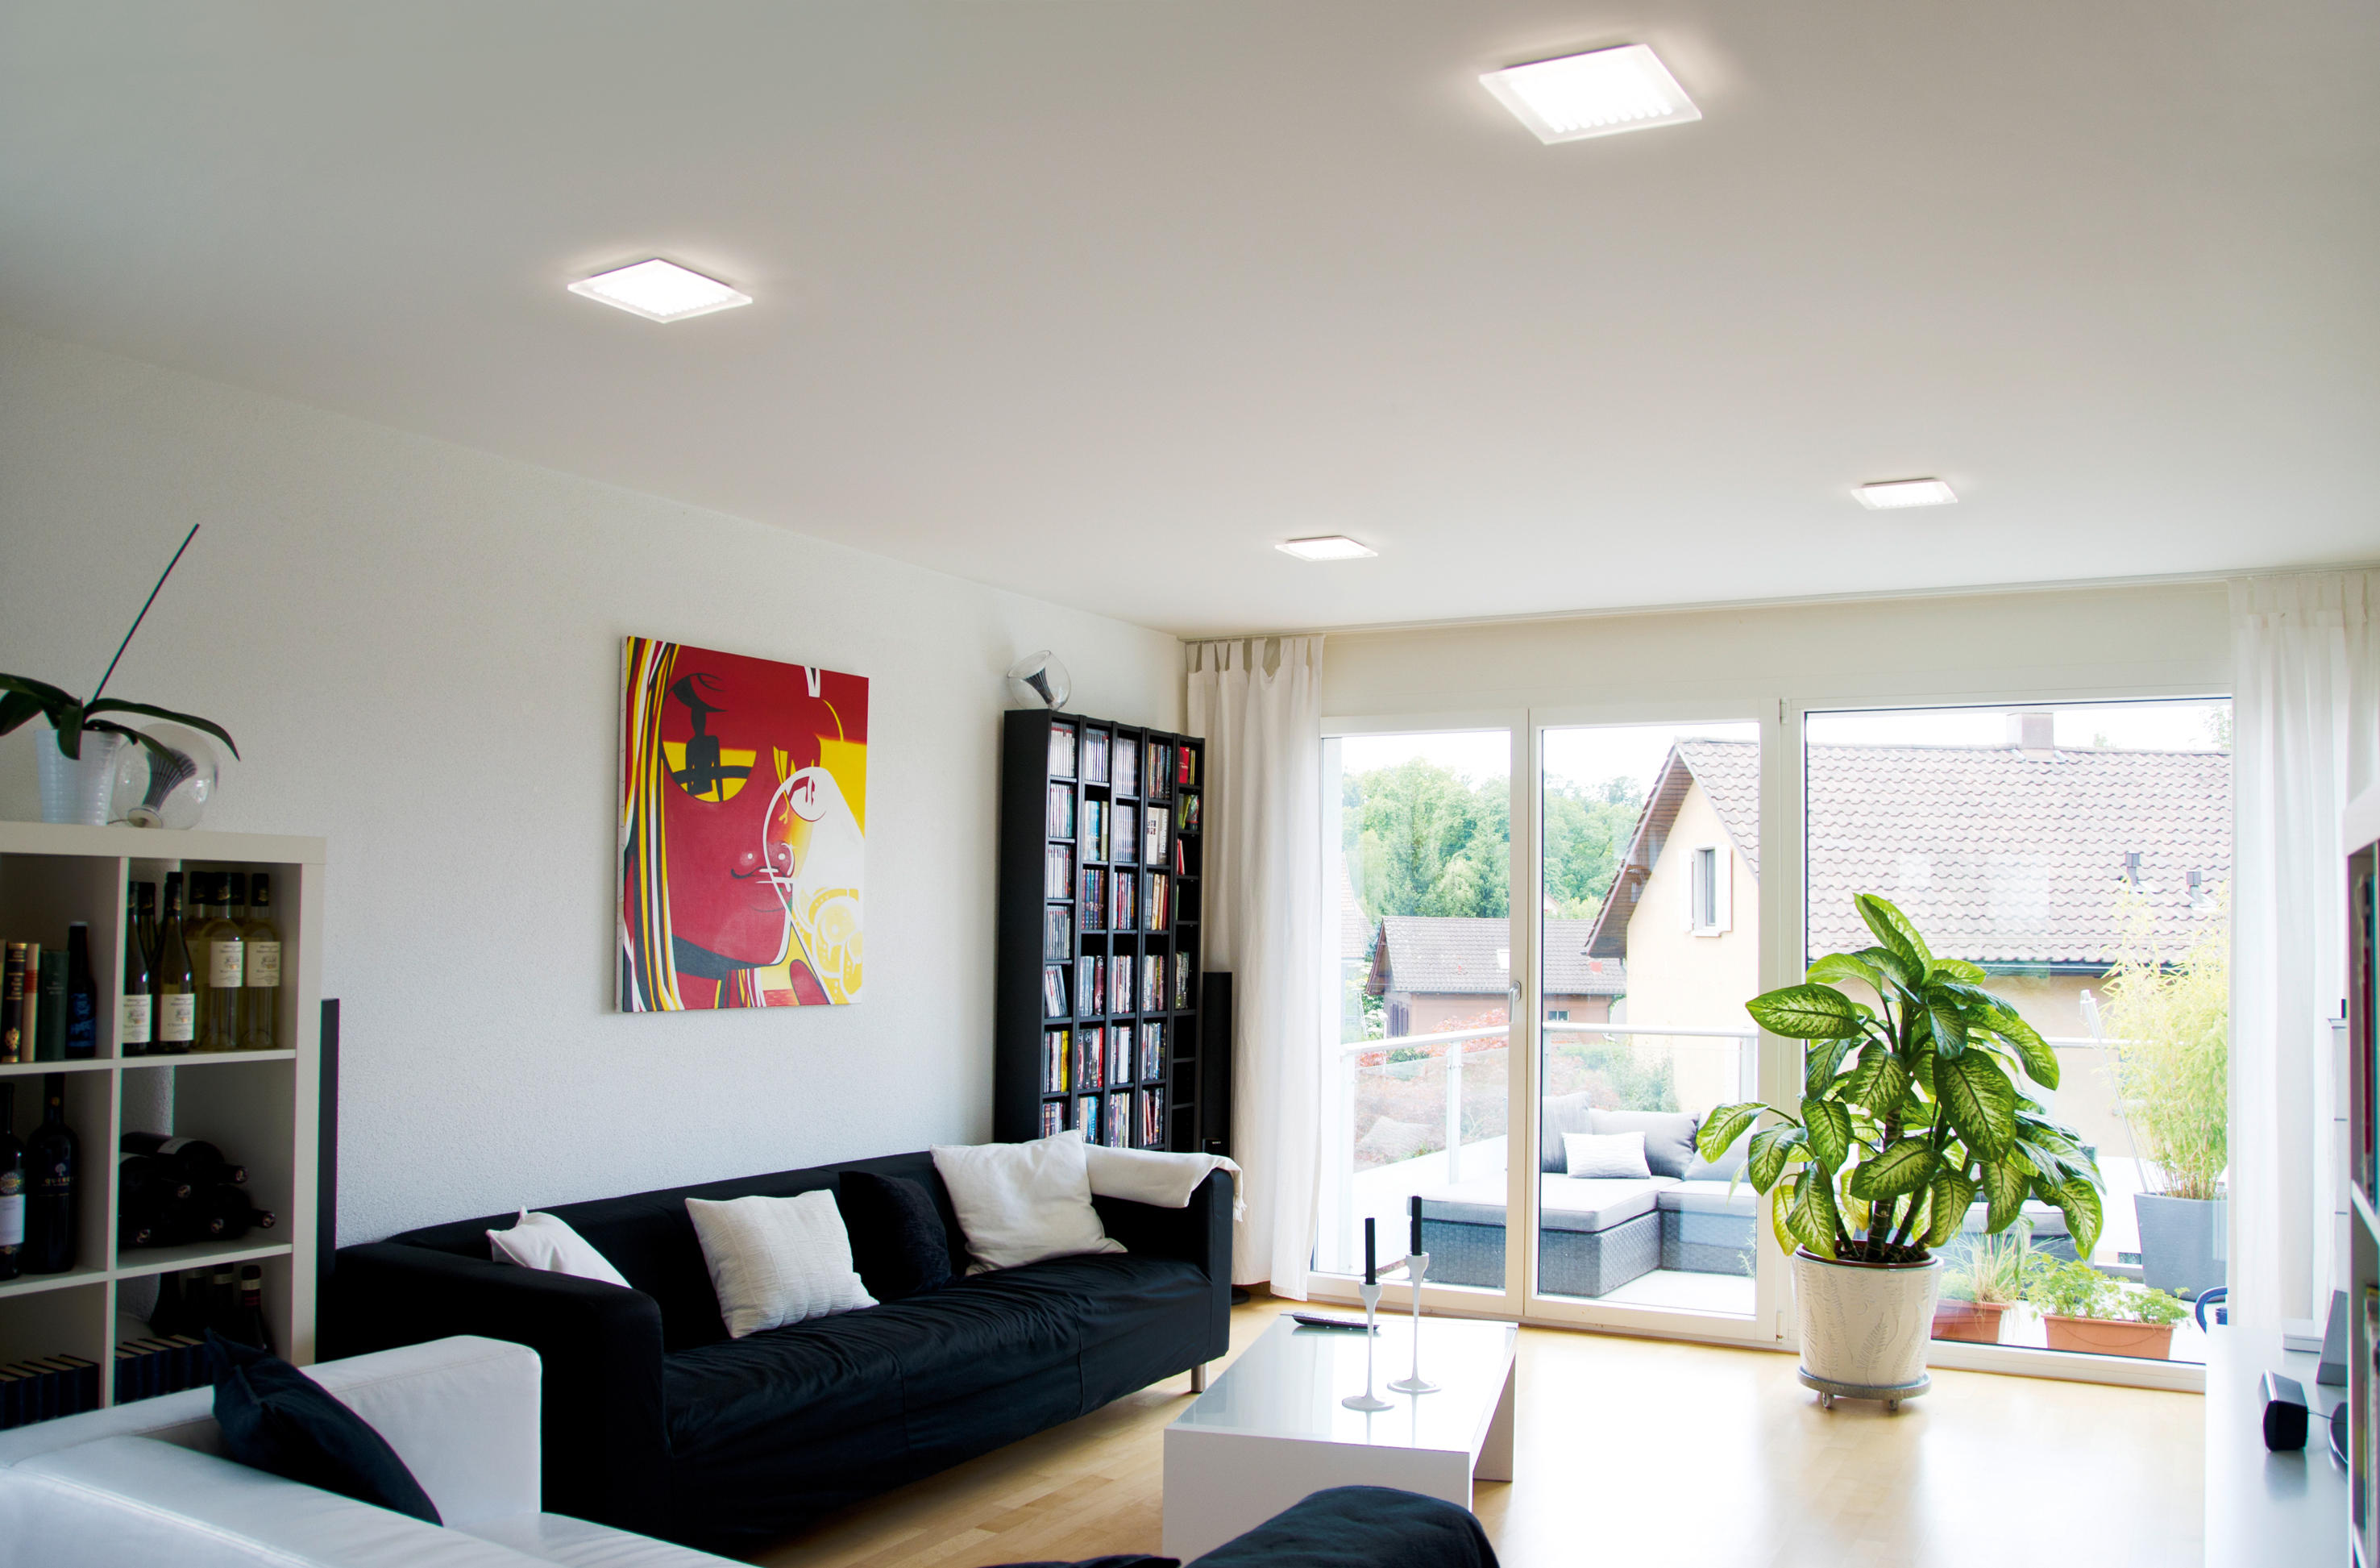 CLICKLED 49 / 81 - 24V DC CEILING LIGHT - Ceiling lights from UNEX ...